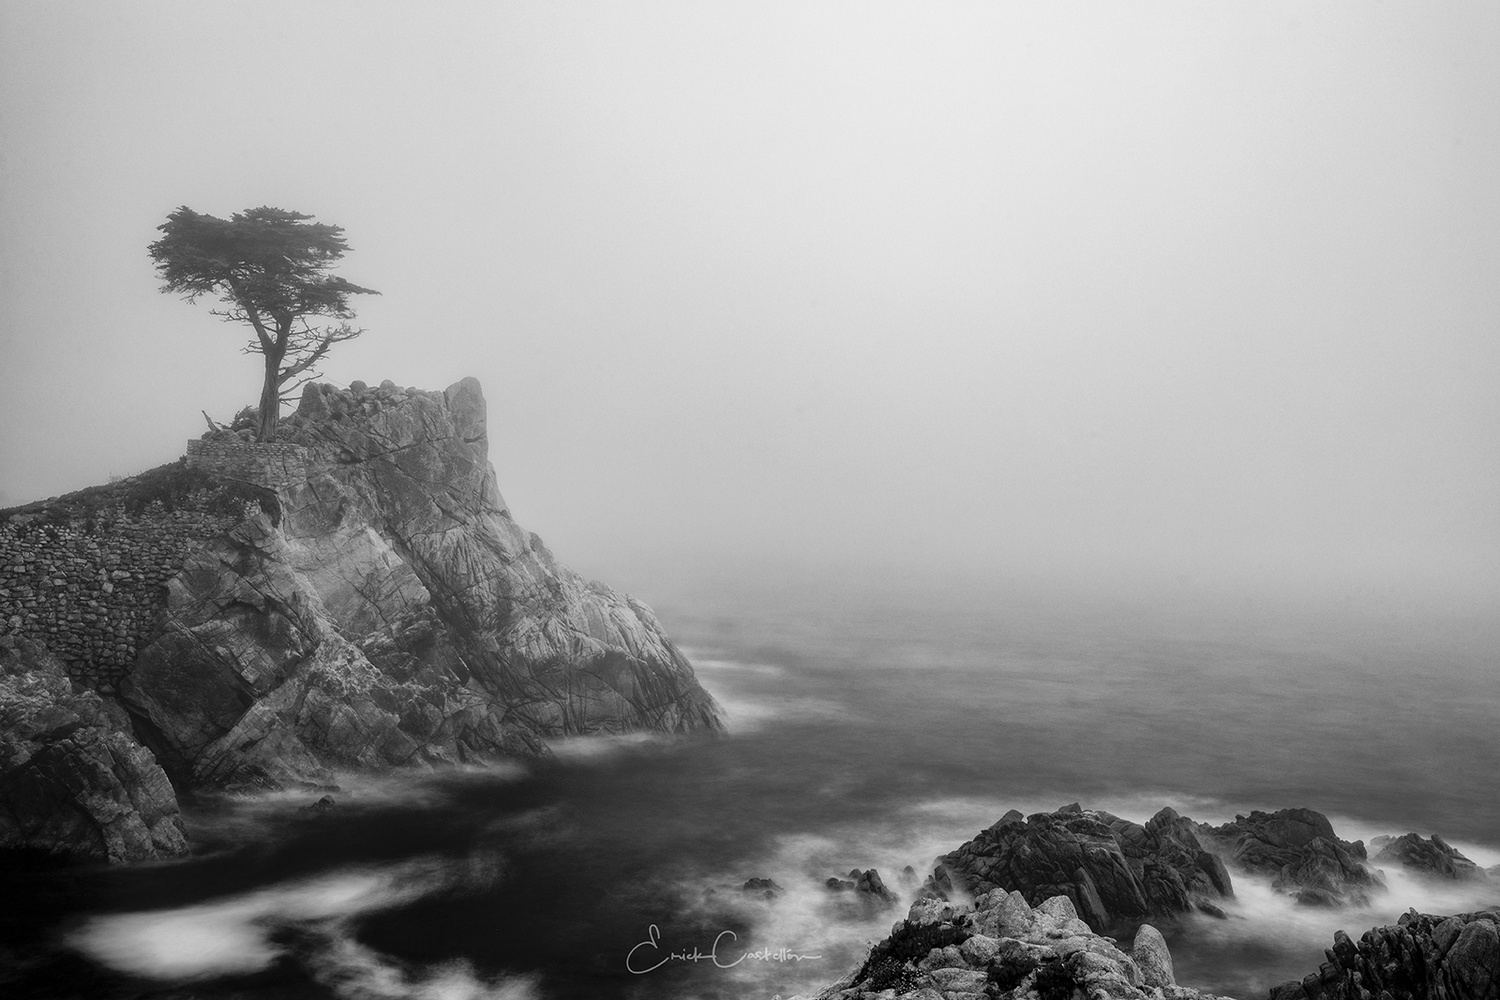 Lone Cypress in Fob by Erick Castellon